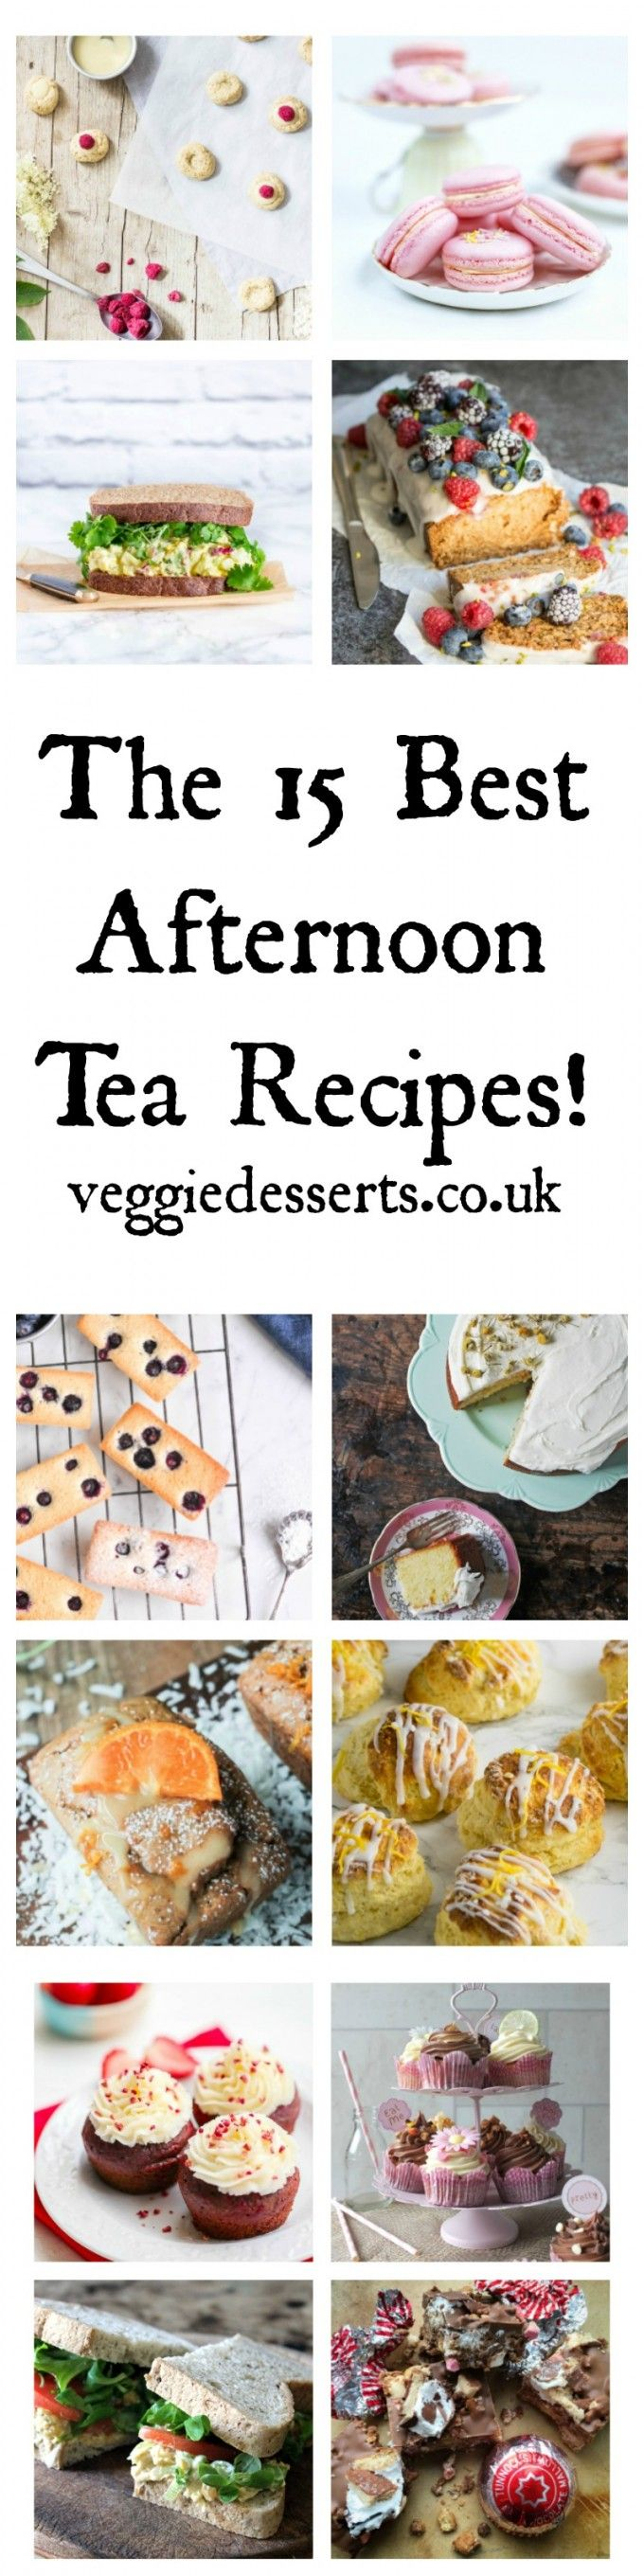 The 15 Best Afternoon Tea Recipes | Veggie Desserts Blog  Here are 15 of the best afternoon tea recipes – perfect for Mother's Day! From scones and cupcakes to sandwiches and macarons.  veggiedesserts.co.uk